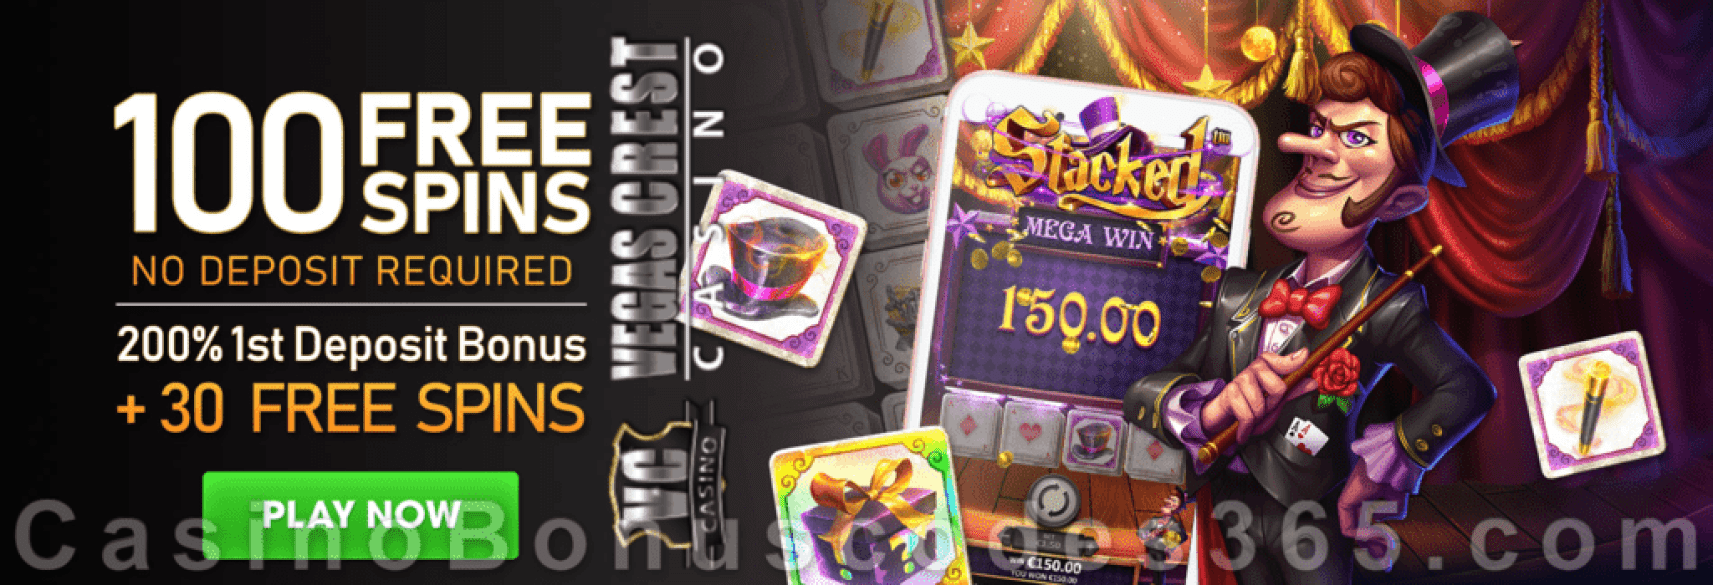 Vegas Crest Casino 100 FREE Betsoft Stacked Spins and 200% Match Bonus plus 30 FREE Spins Special Welcome Pack